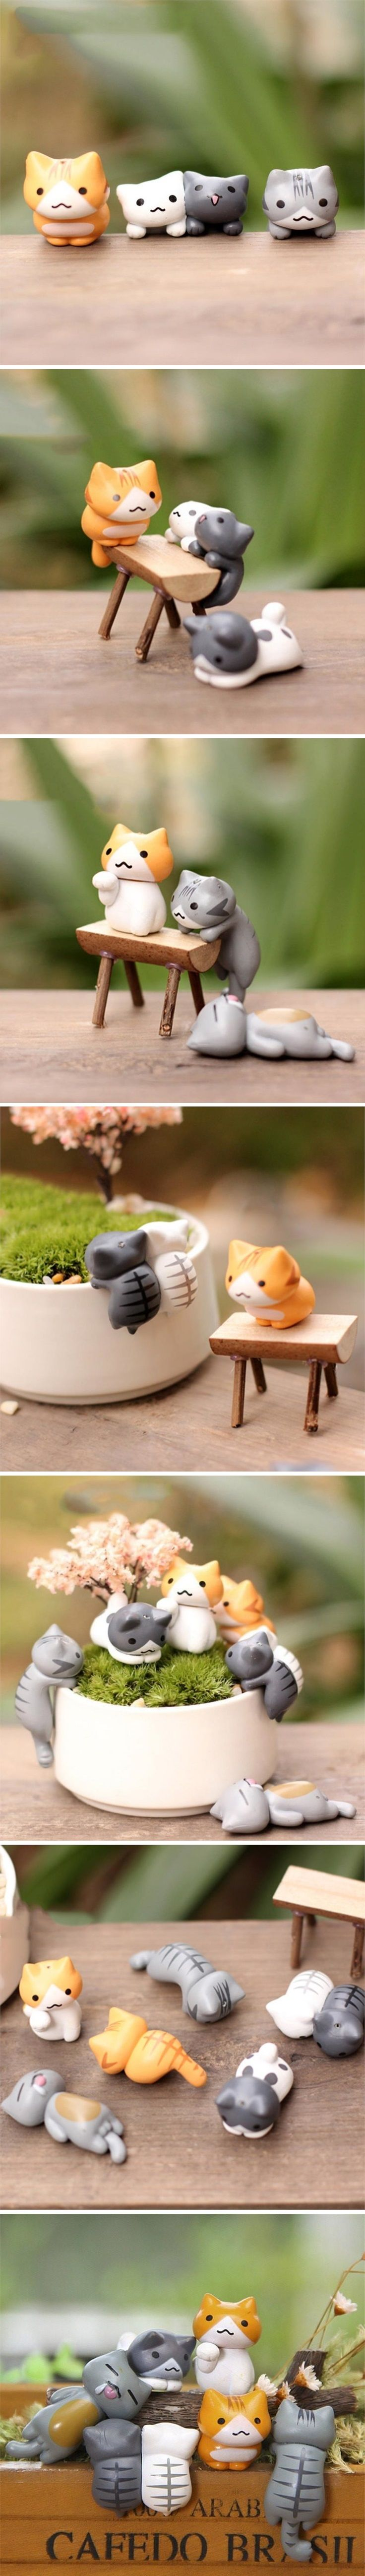 """That's the great secret of creativity. You treat ideas like cats: you make them follow you.""  Set new accents with these Mini Decorative Lazy Cats and level up the cuteness factor by using them to decor all kinds of tables, little small pots or bowls."